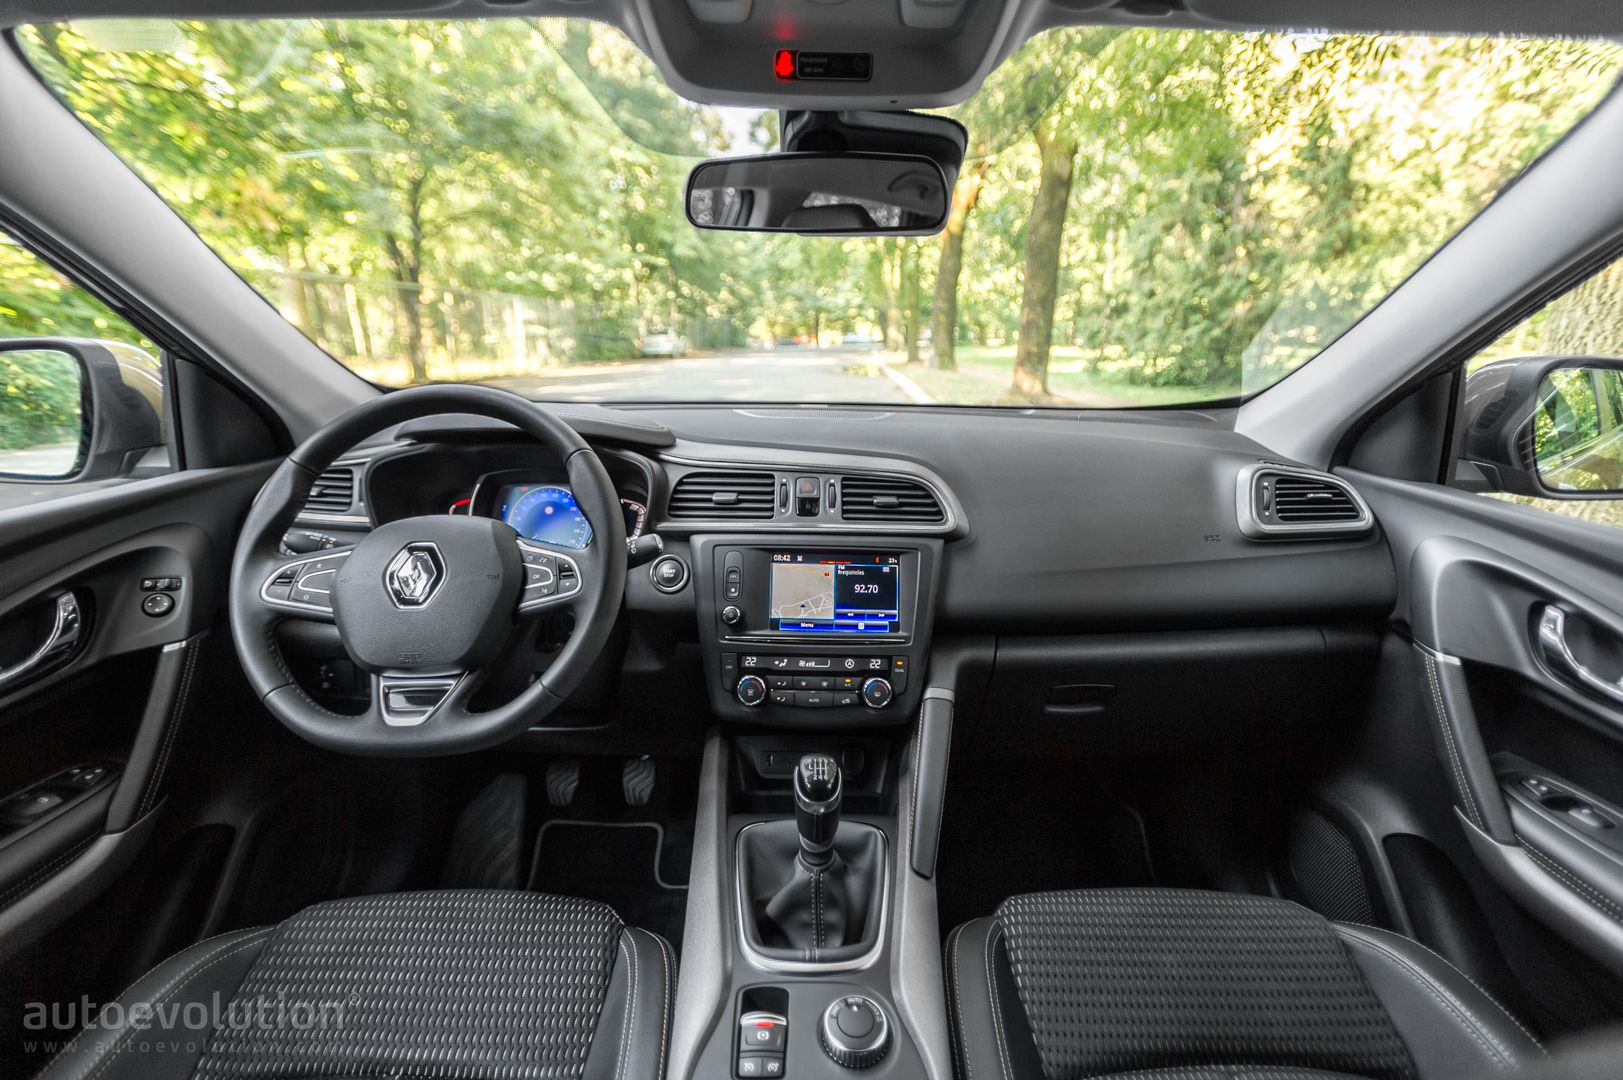 Kadjar Interior 2017 >> 2015 Renault Kadjar Review - autoevolution